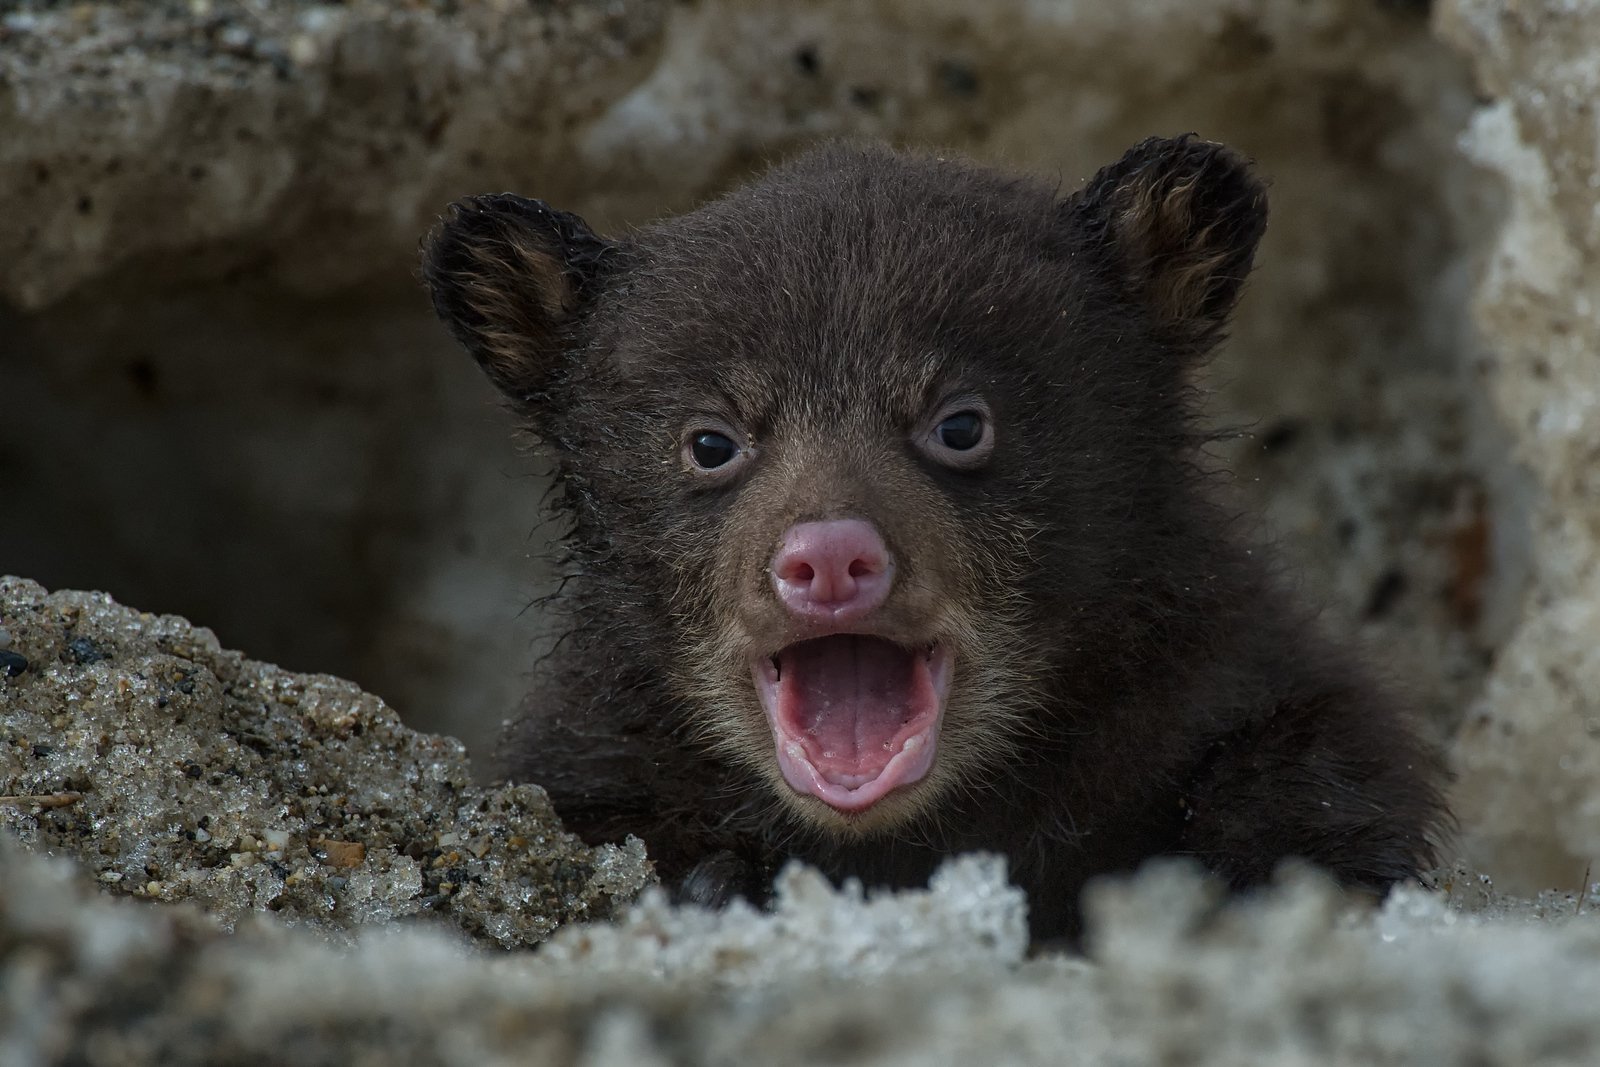 Black Bear at her den with baby new-born bear cub. Bear cub takes its first visit outside the den. Yukon, Canada.